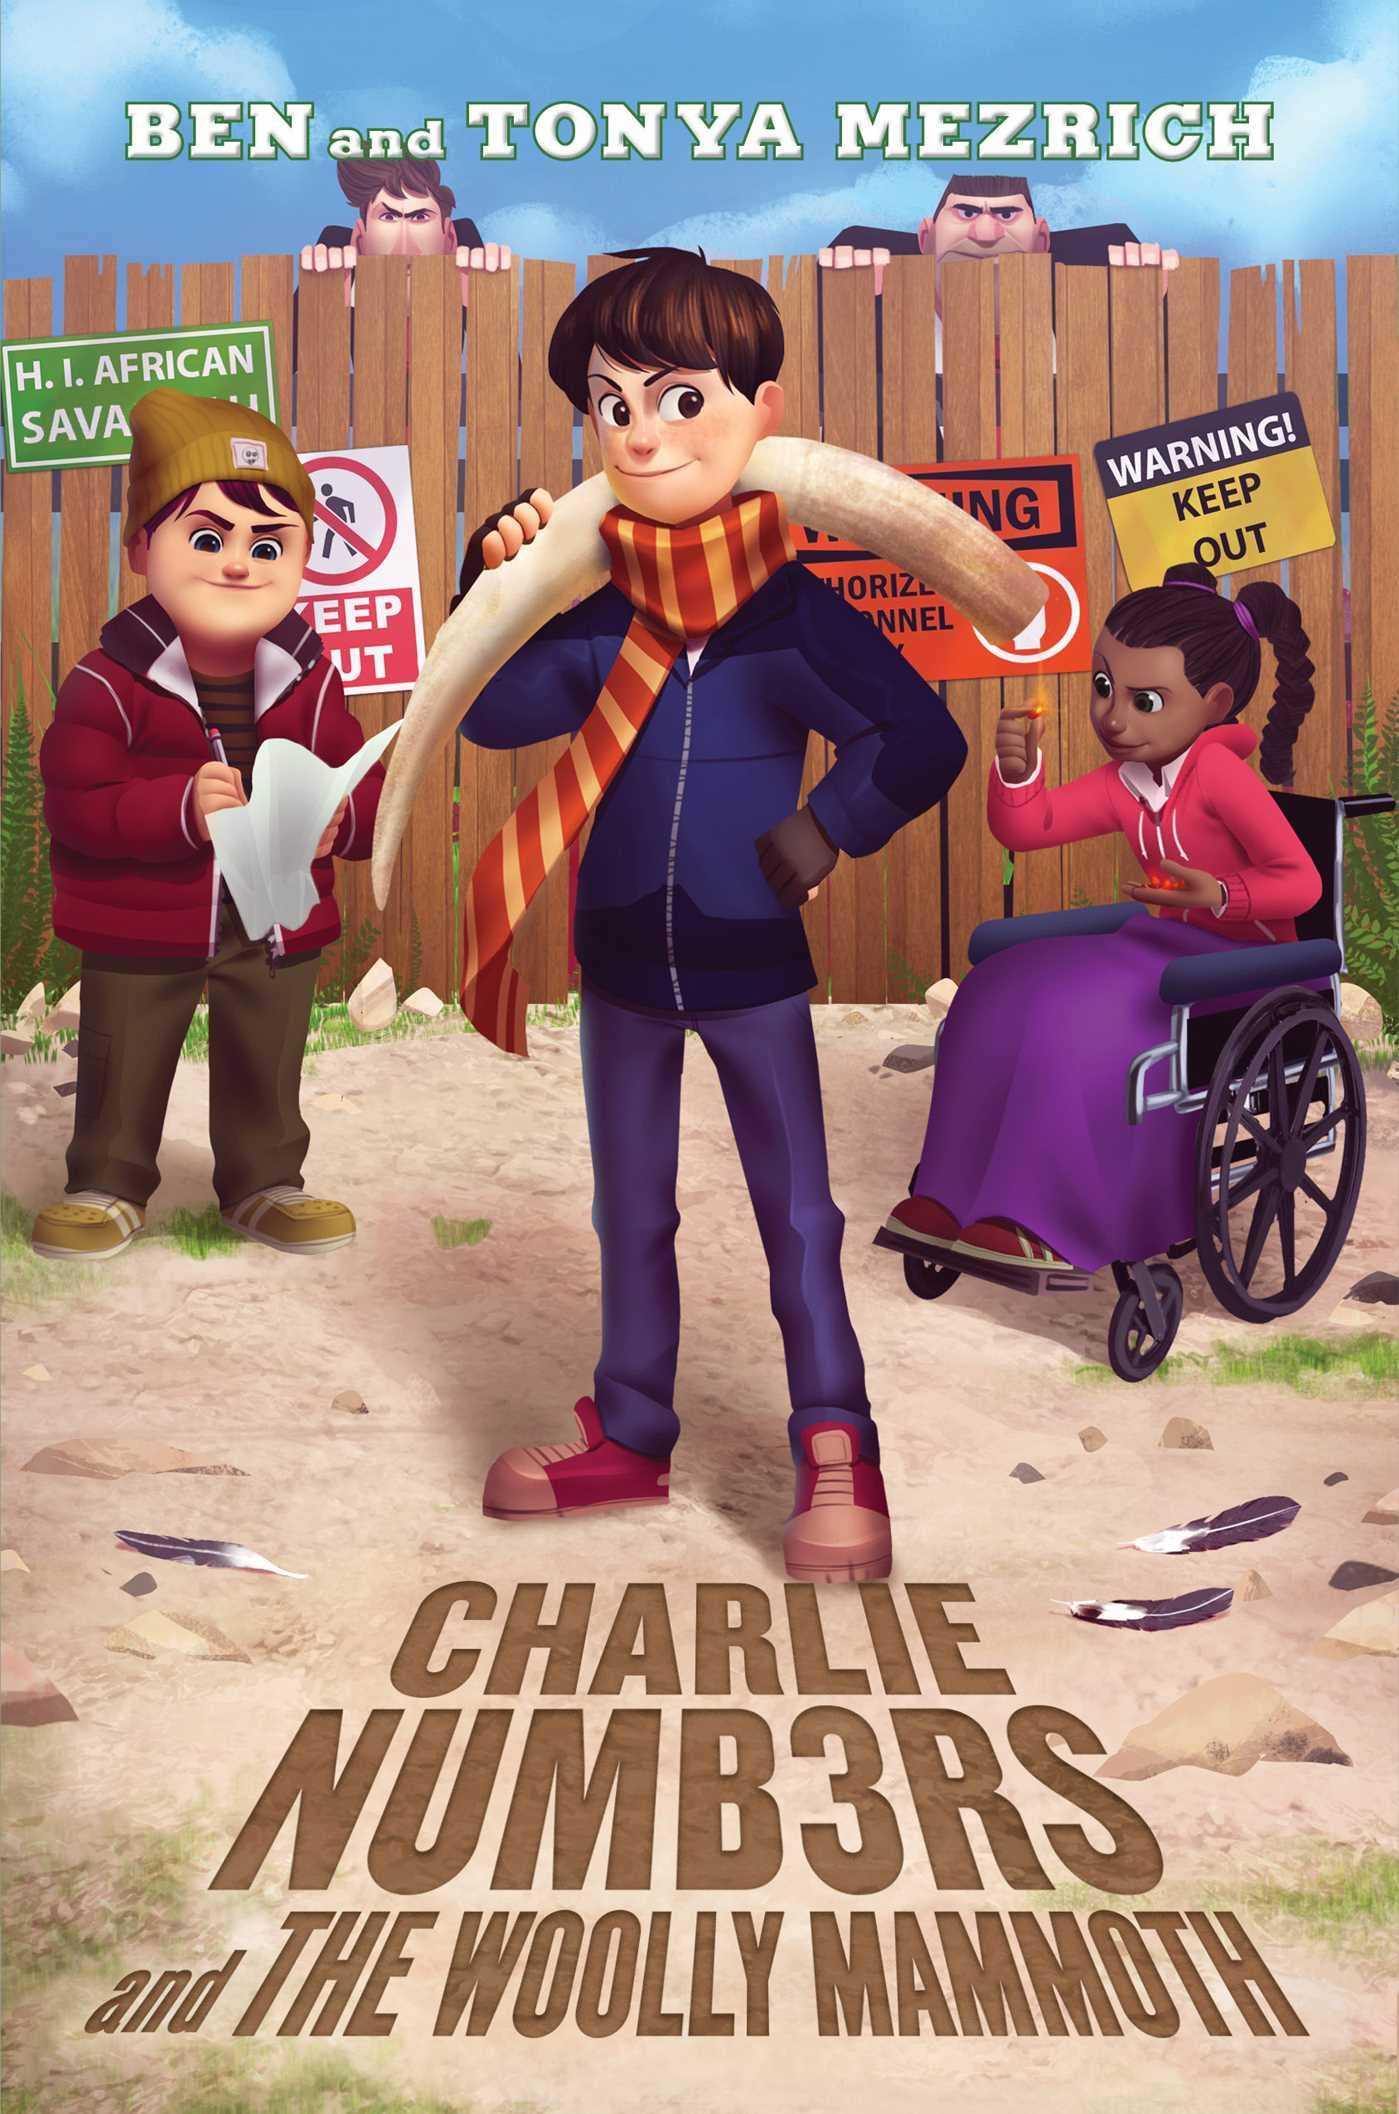 Charlie and Bens adventue